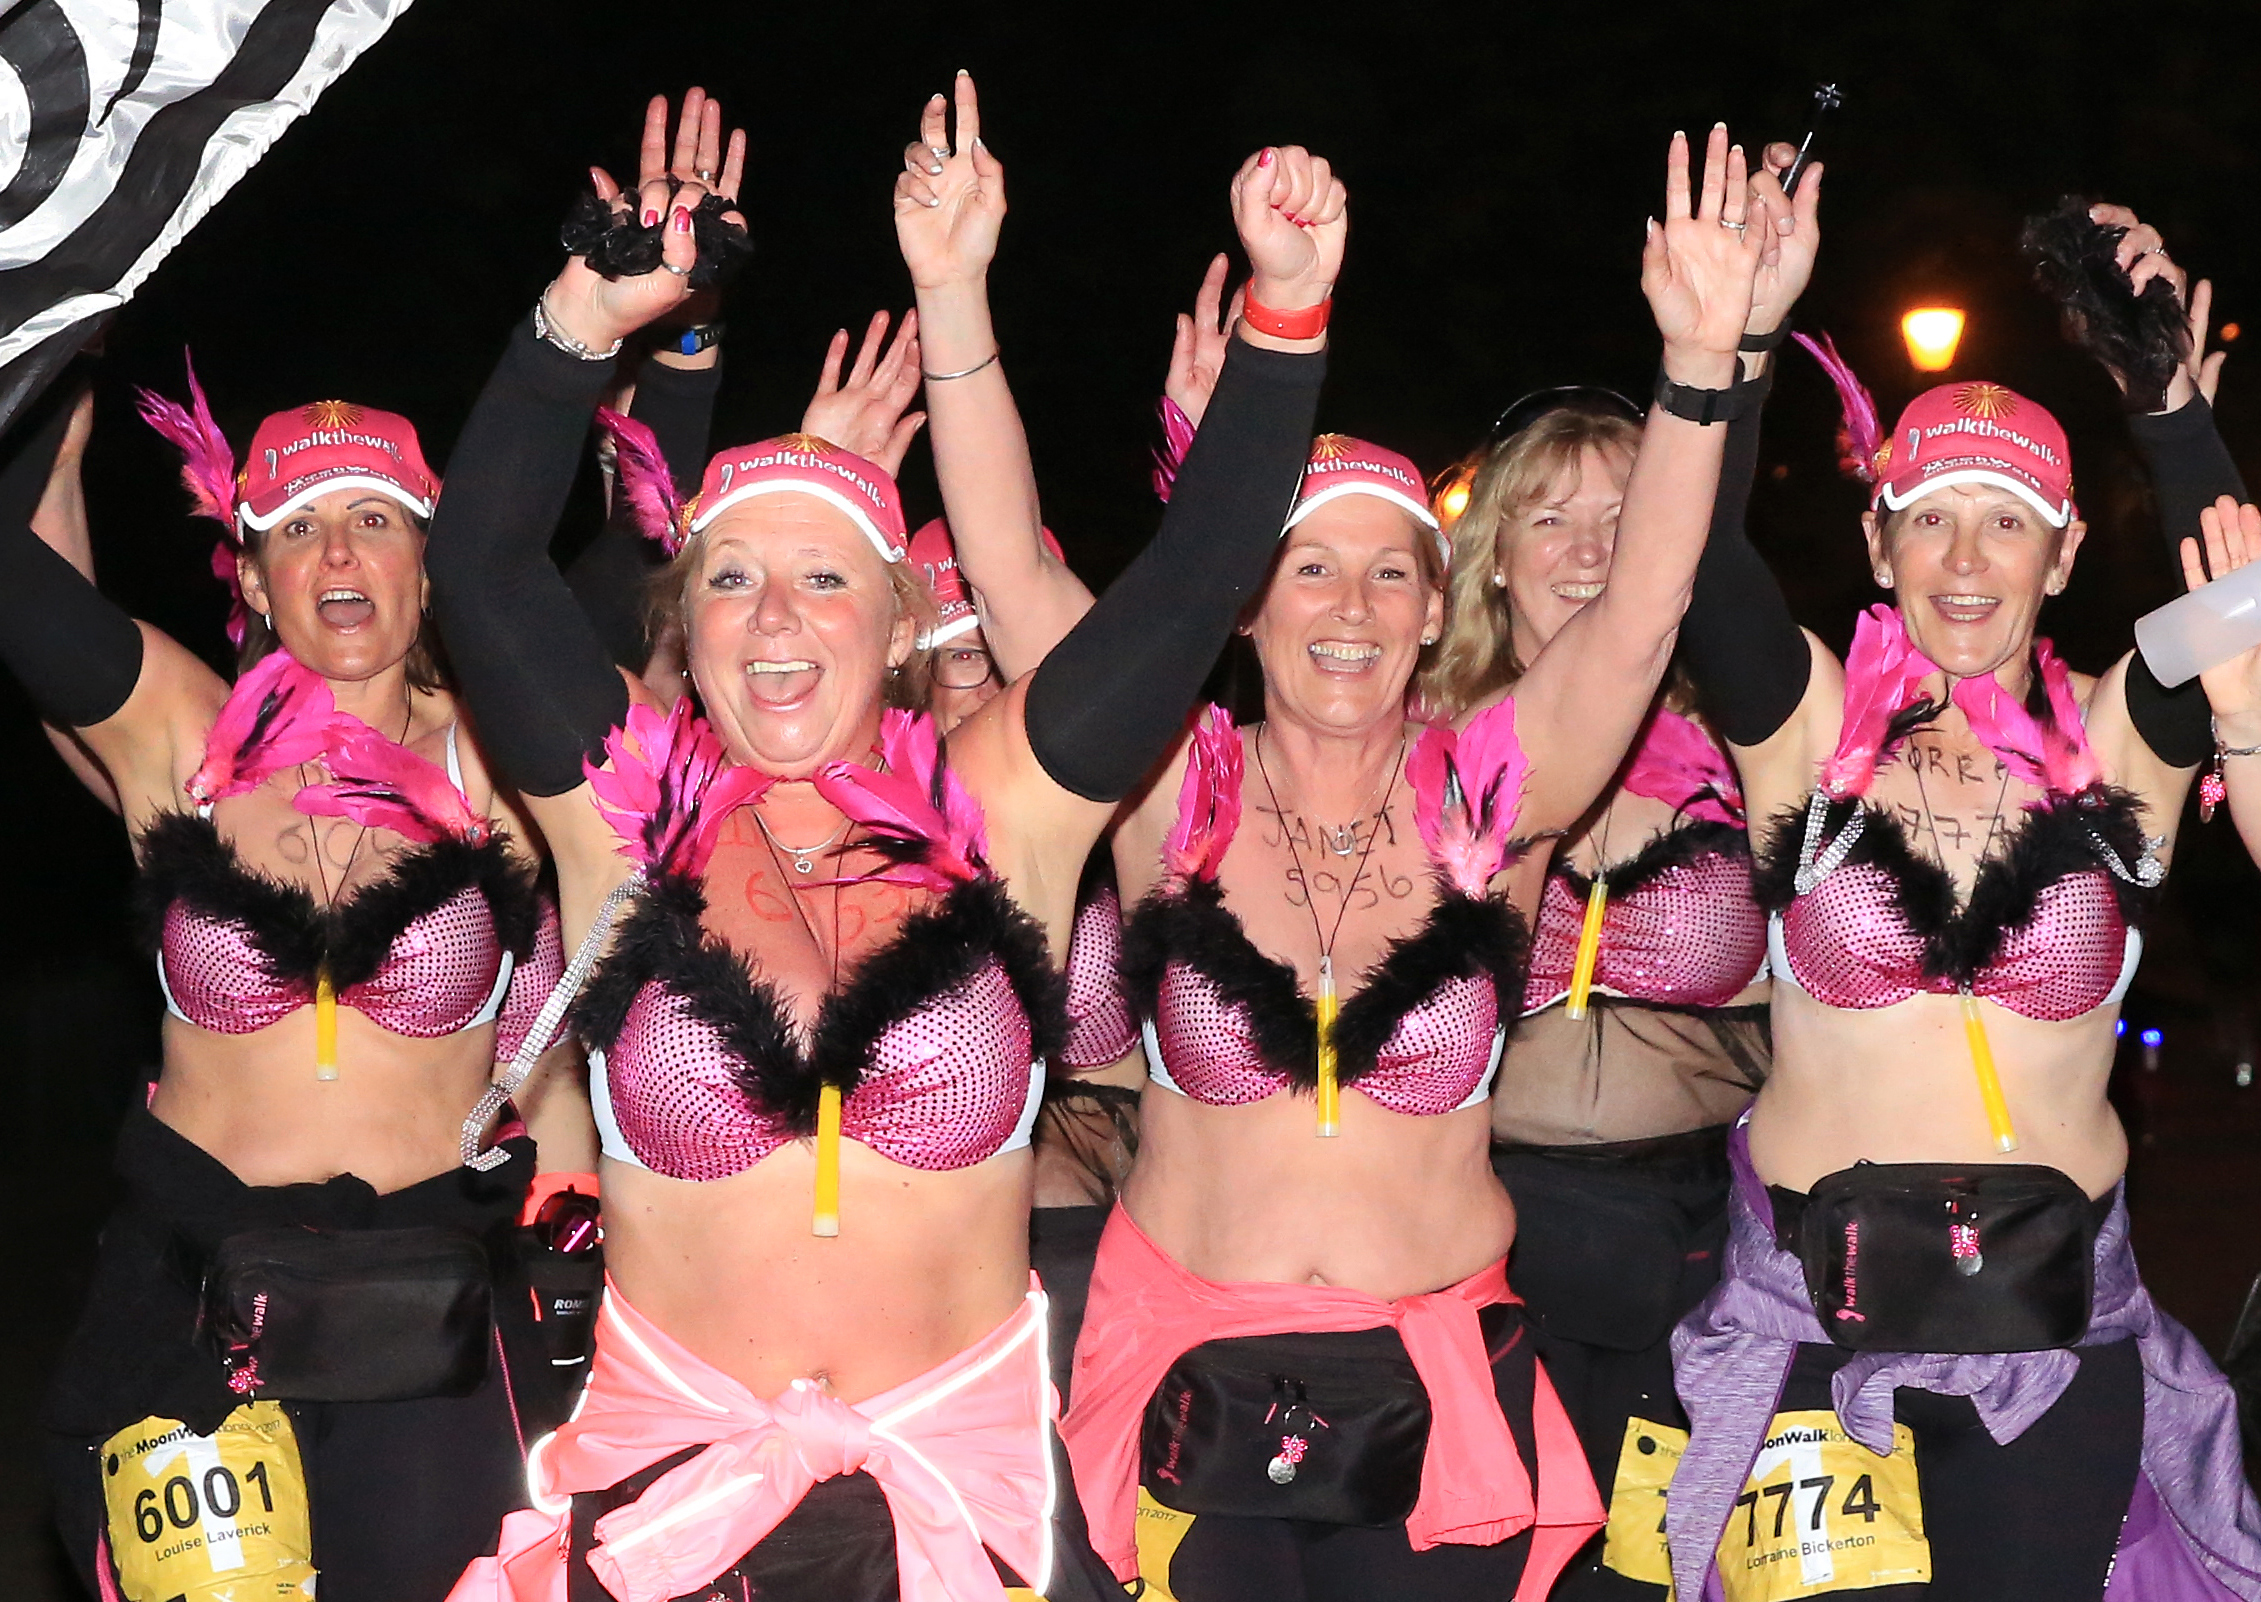 The MoonWalk London 2019